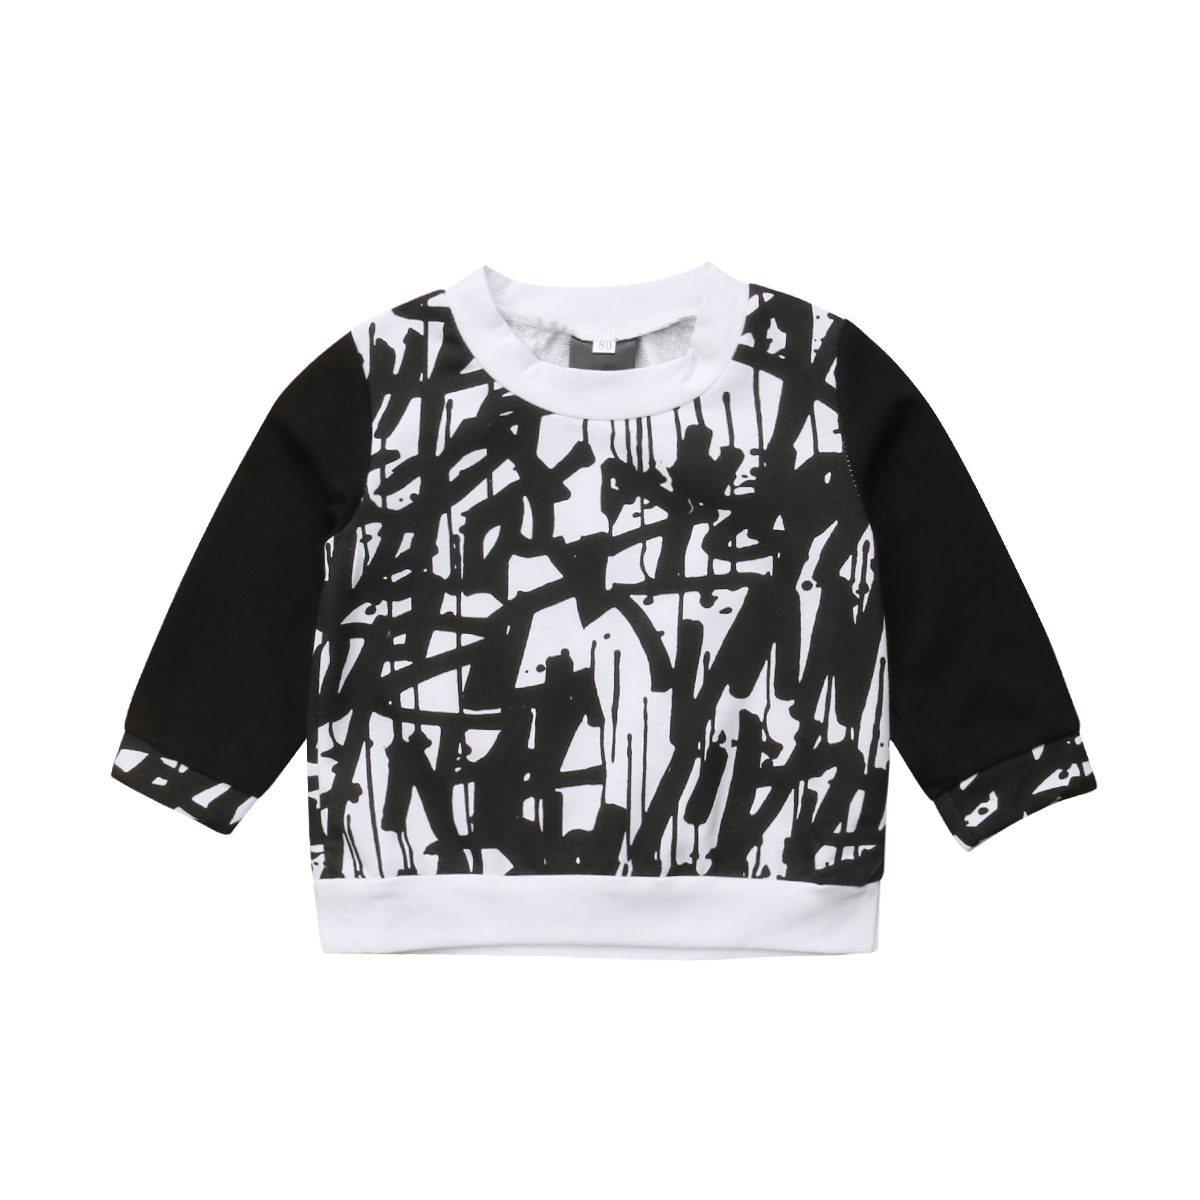 472d7273612d 0-5Y Toddler Kids Baby Boy Girl Autumn Clothes Long Sleeve Pullover Cotton Hoodies  Sweatshirt